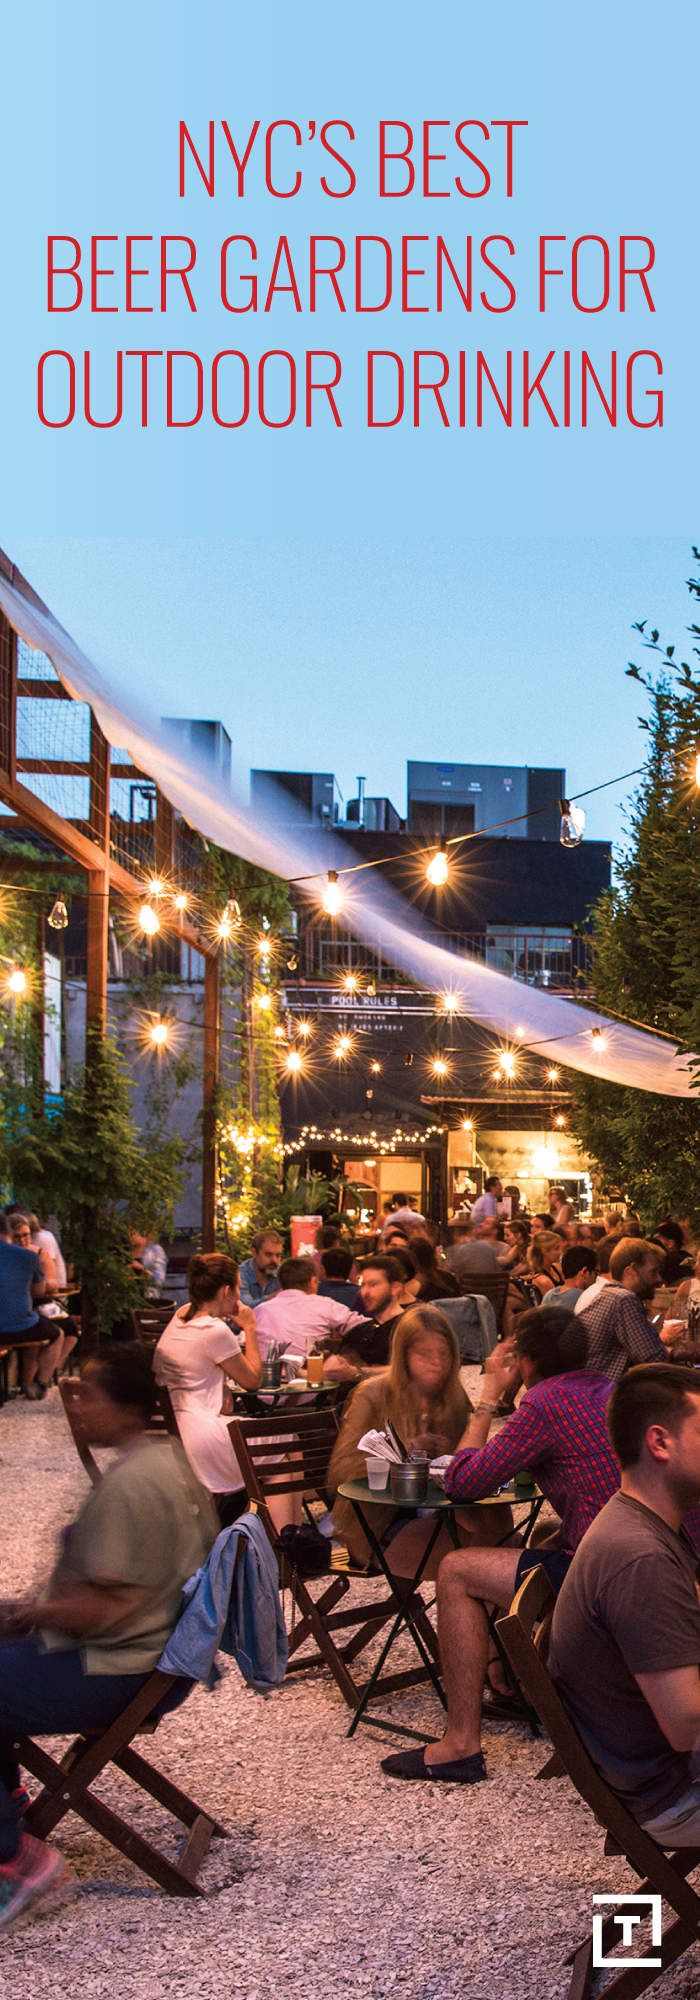 Where there's always beer, sun, and outdoor seating aplenty.